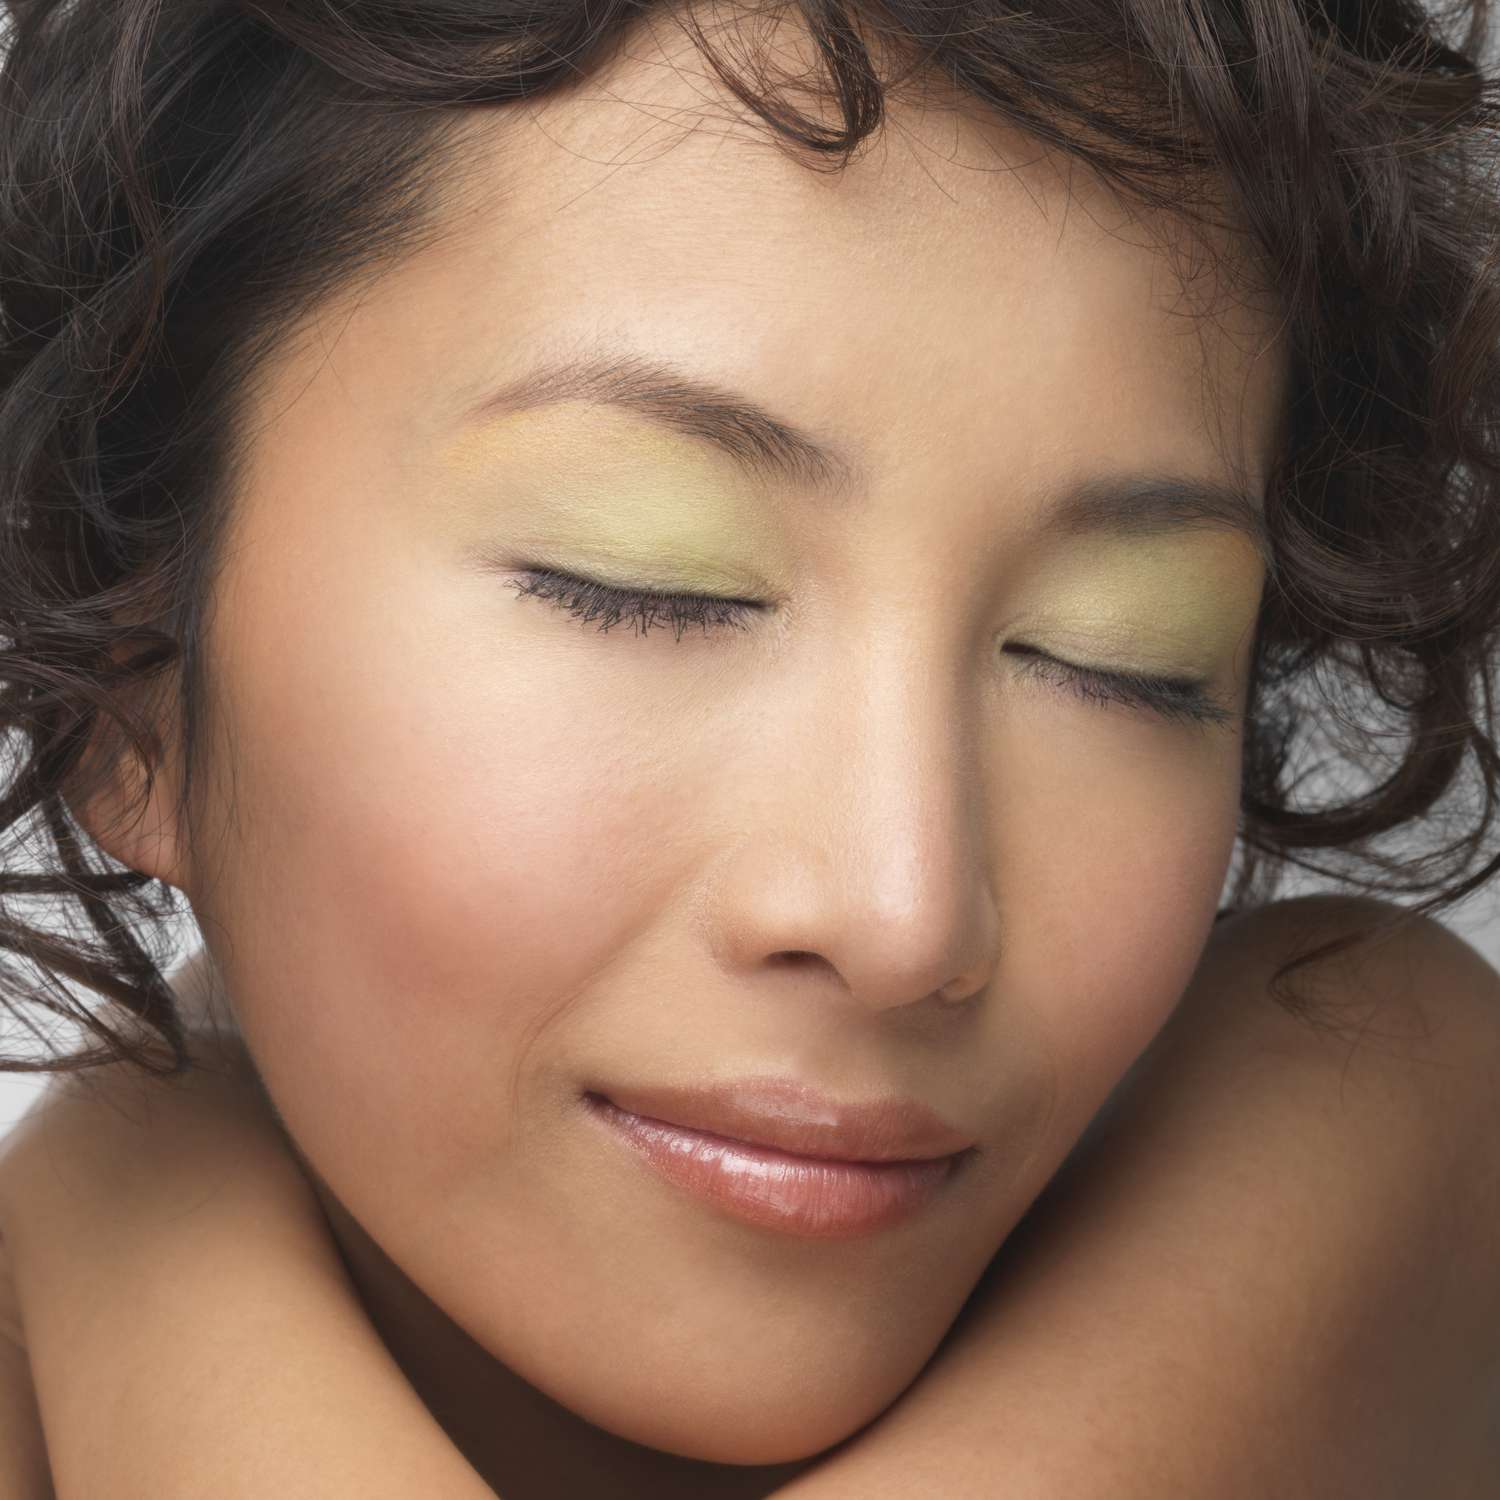 young woman with eye makeup